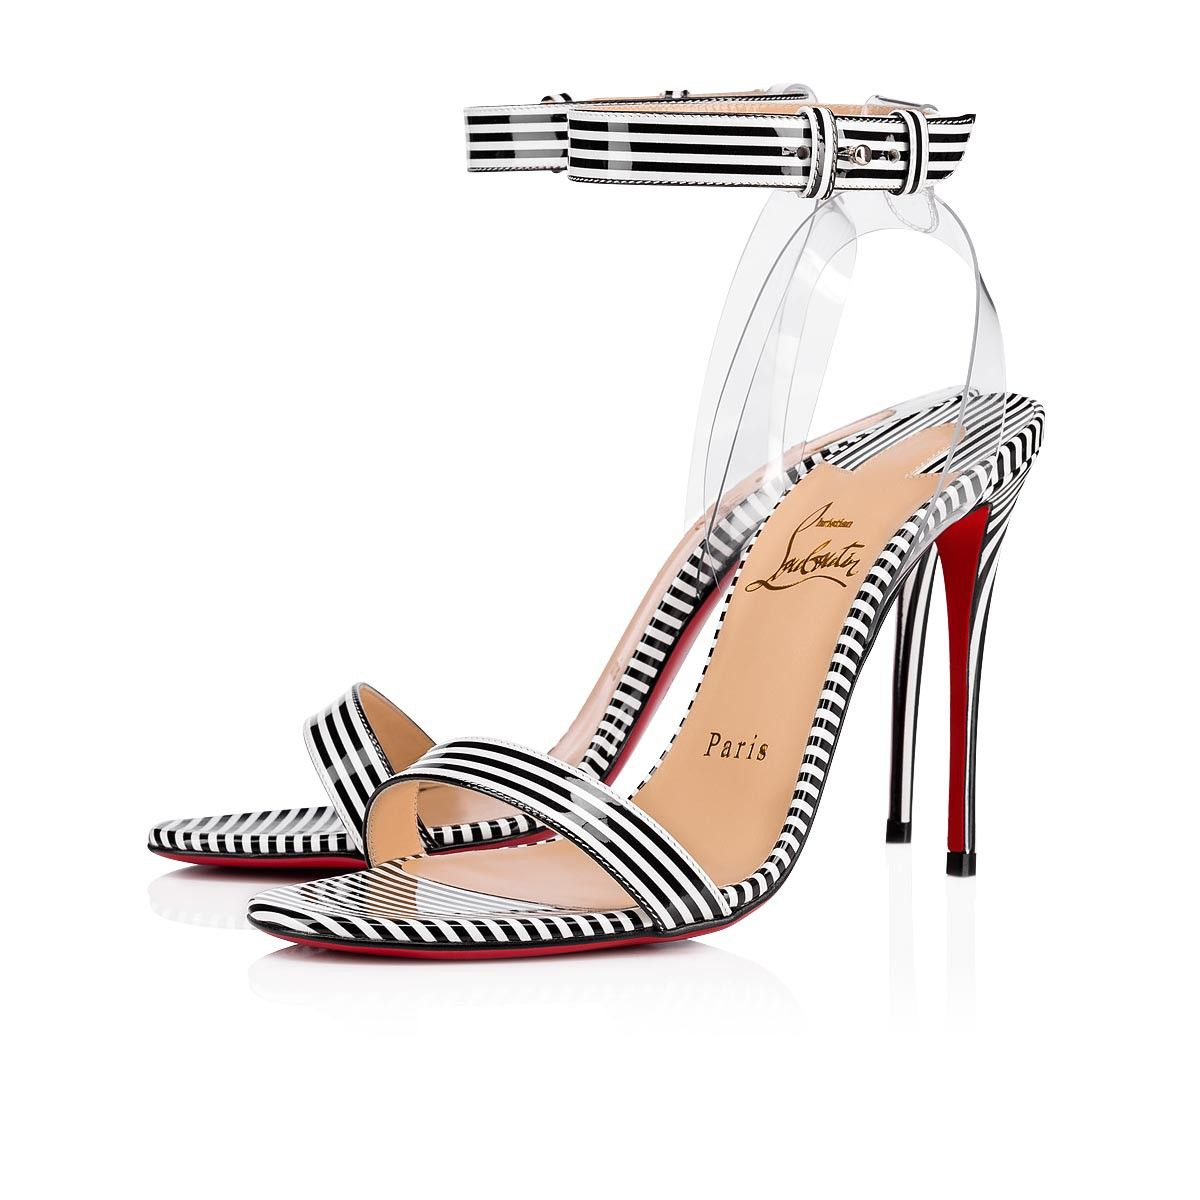 Styled With A Leg Lengthening 100mm Stiletto Heel Christian Louboutin S Jonatina Sandals Are An Exquisite Demonstration Christian Louboutin Women Shoes Heels